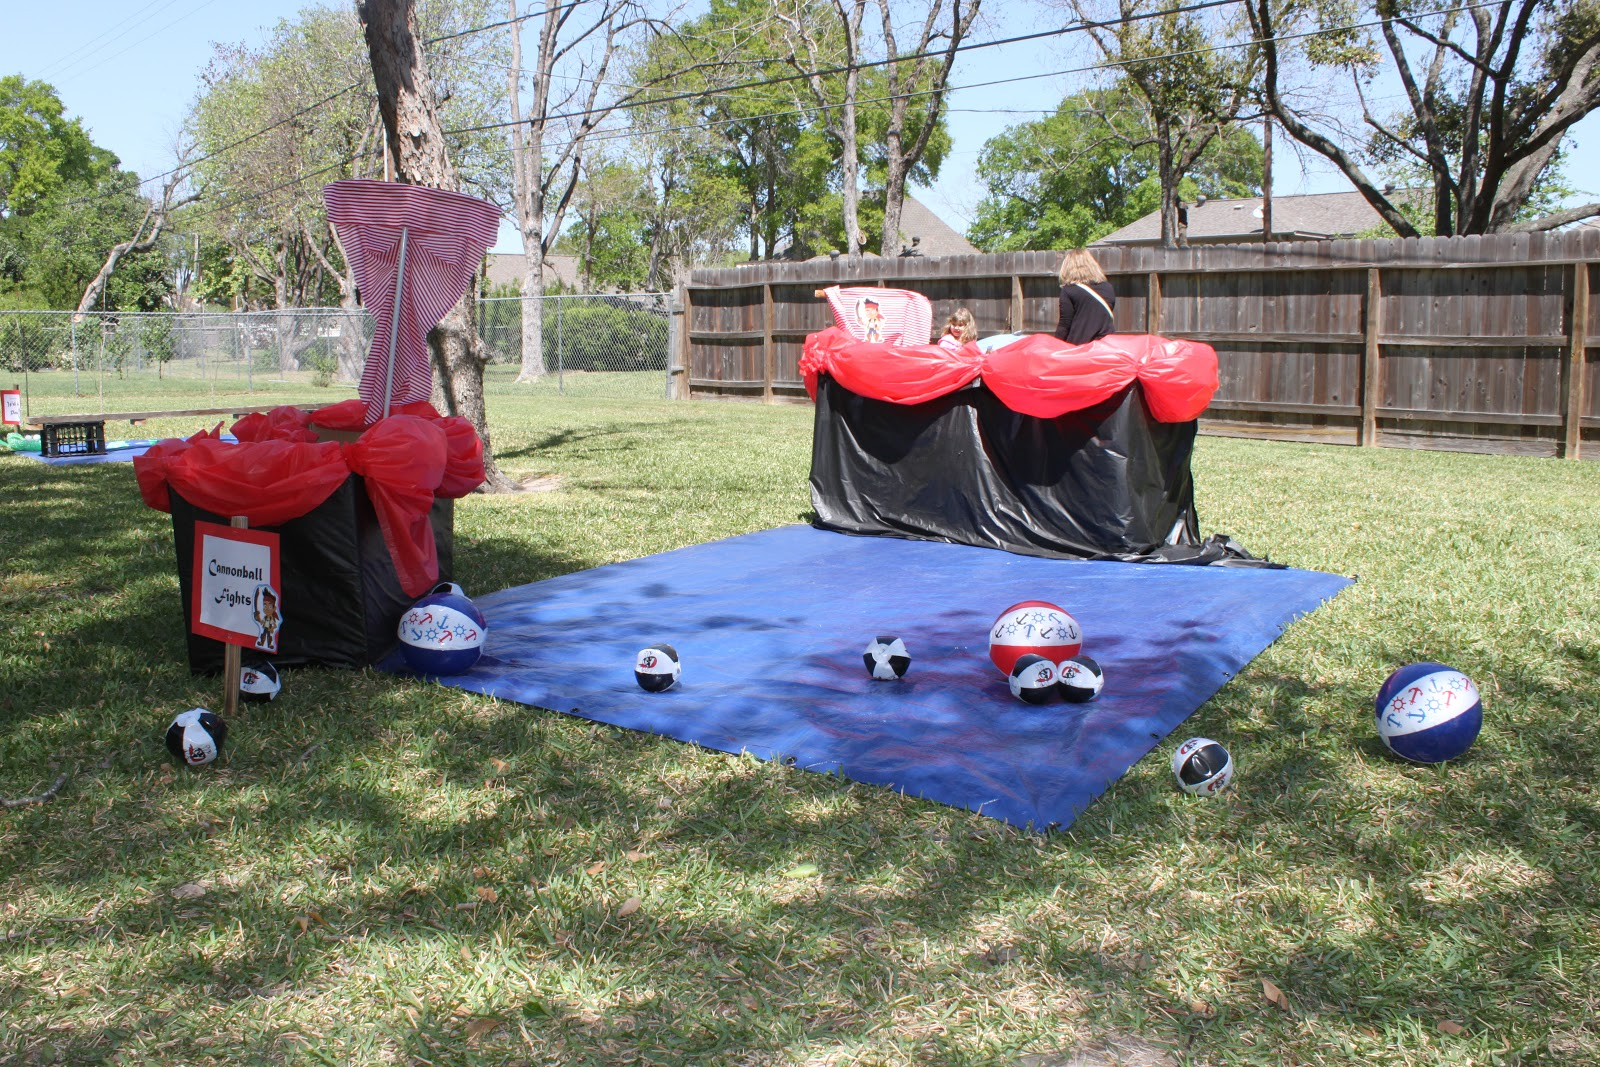 Corporate Crafters: Jake & the Neverland Pirates Party: Games - photo#9